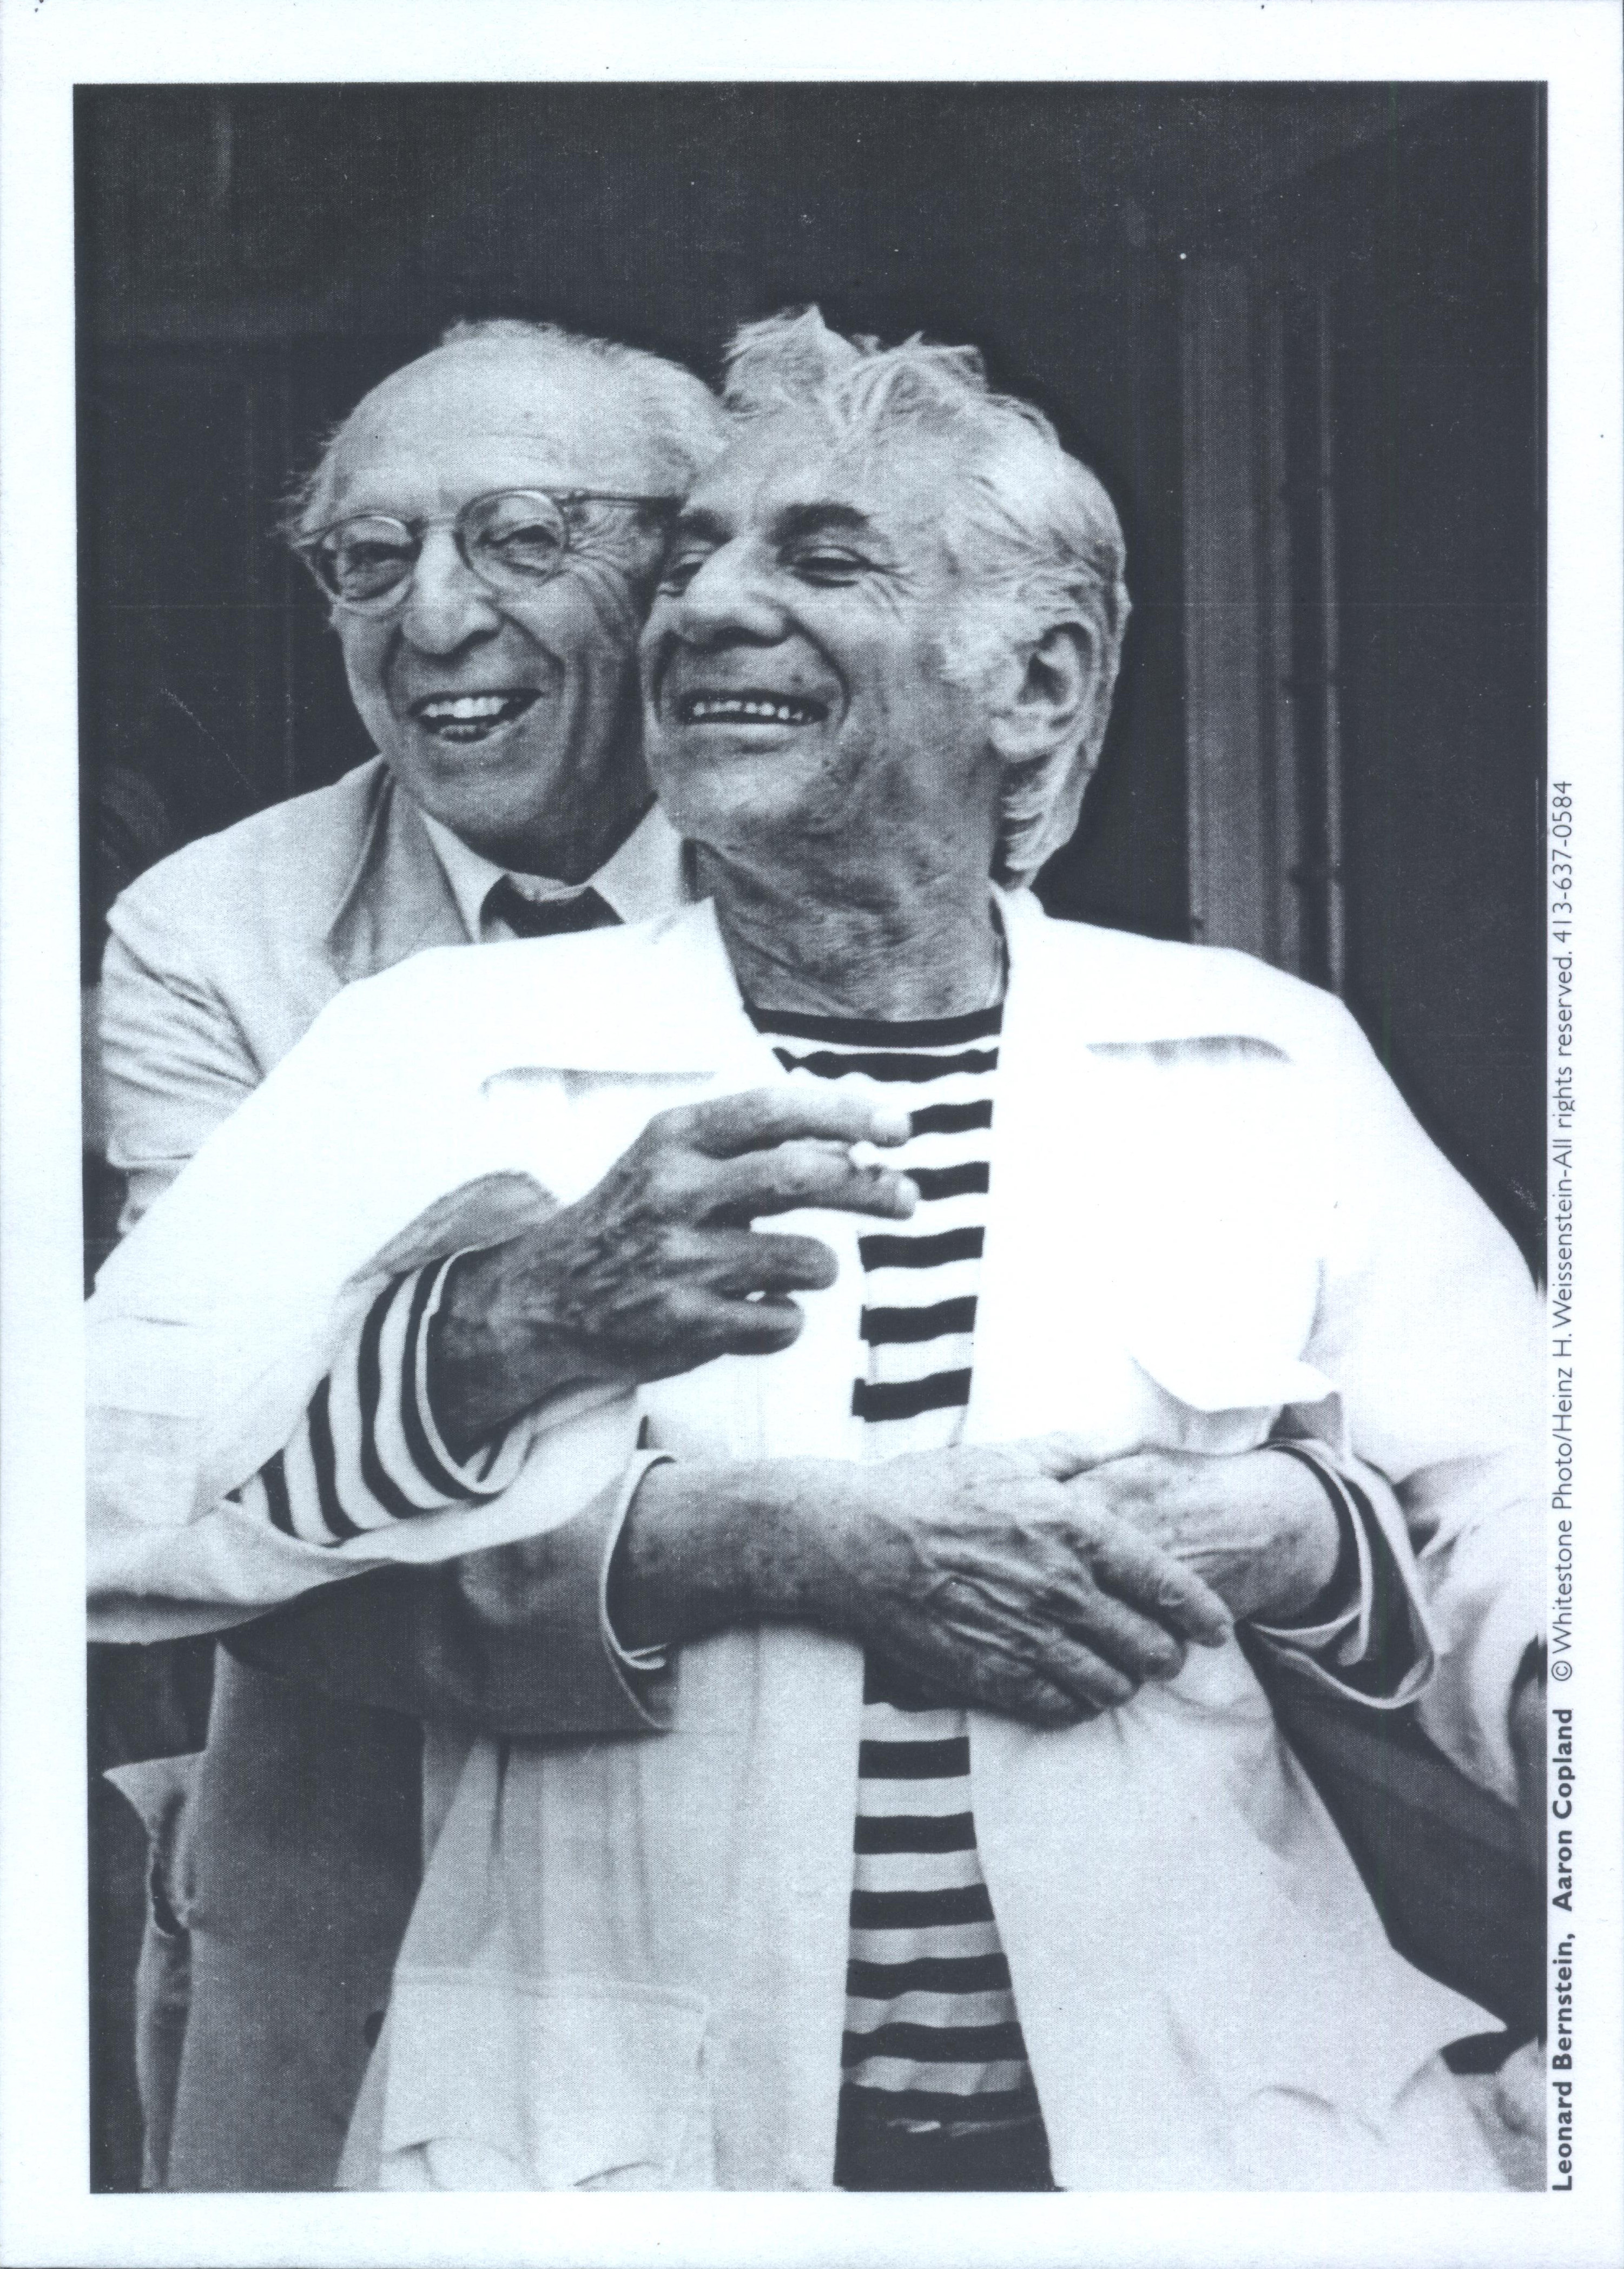 Aaron Copland hugs Leonard Bernstein. Both men are smiling.